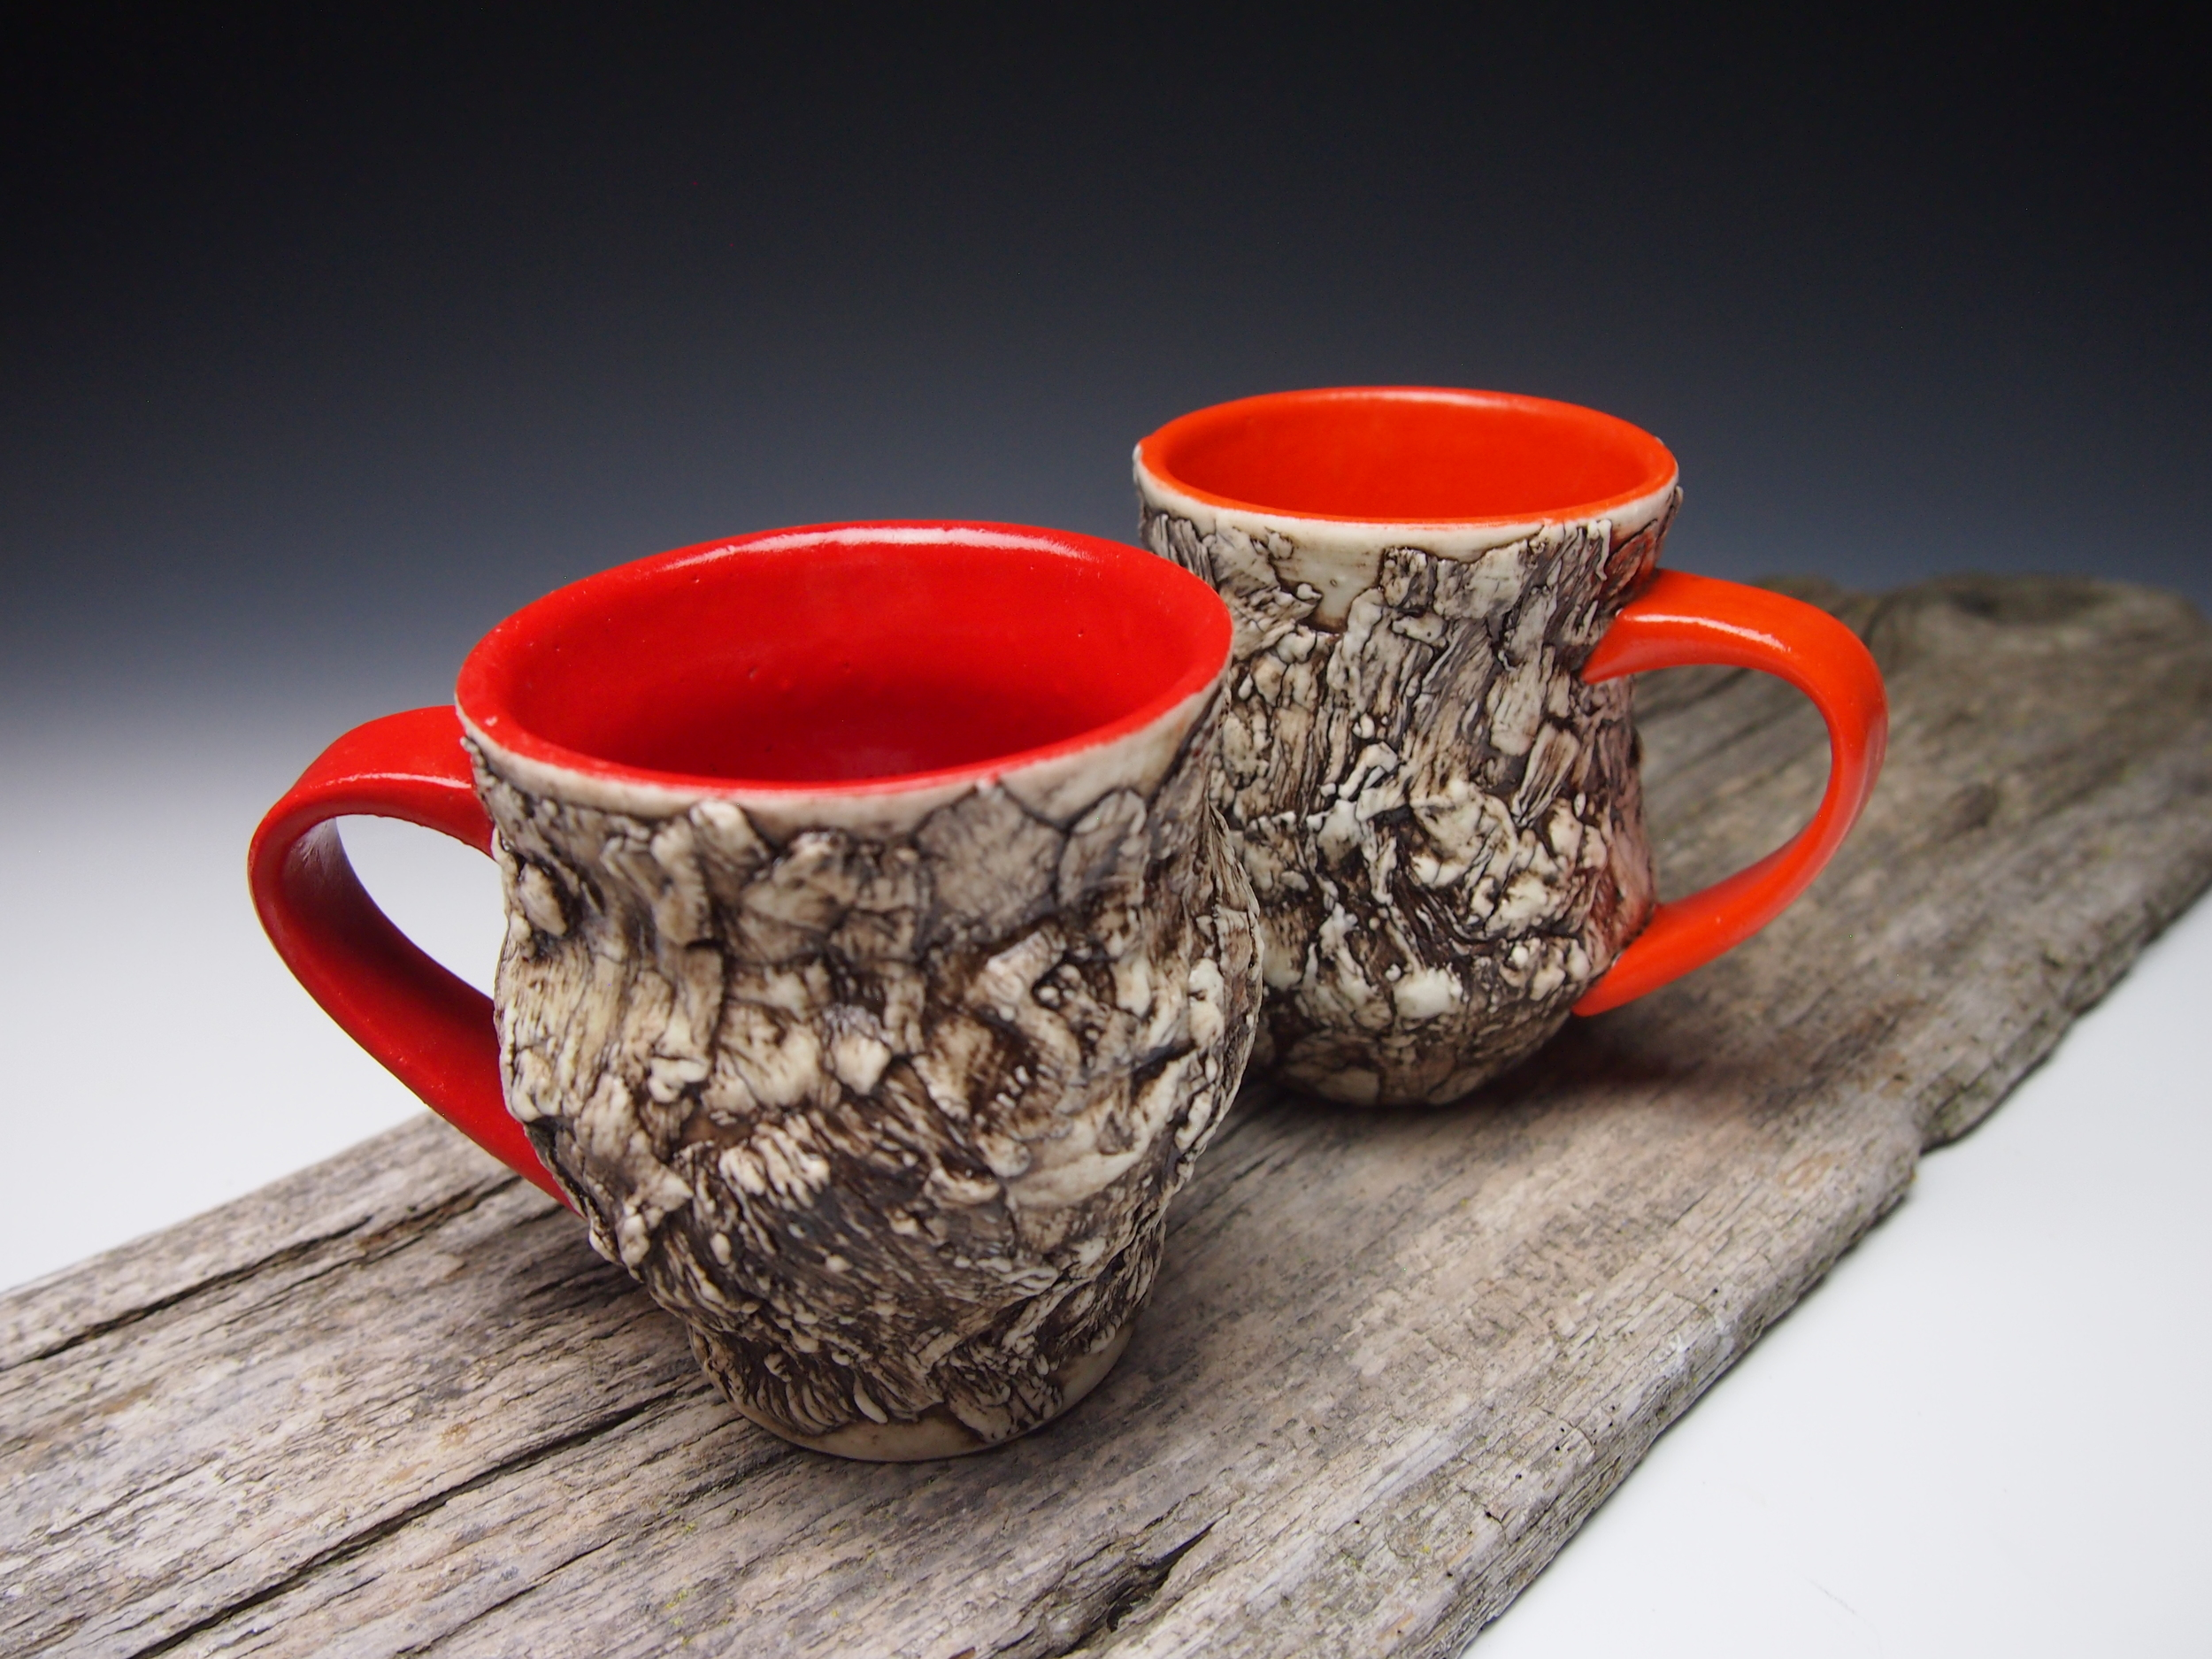 curvy bark mugs - red-orange.jpg